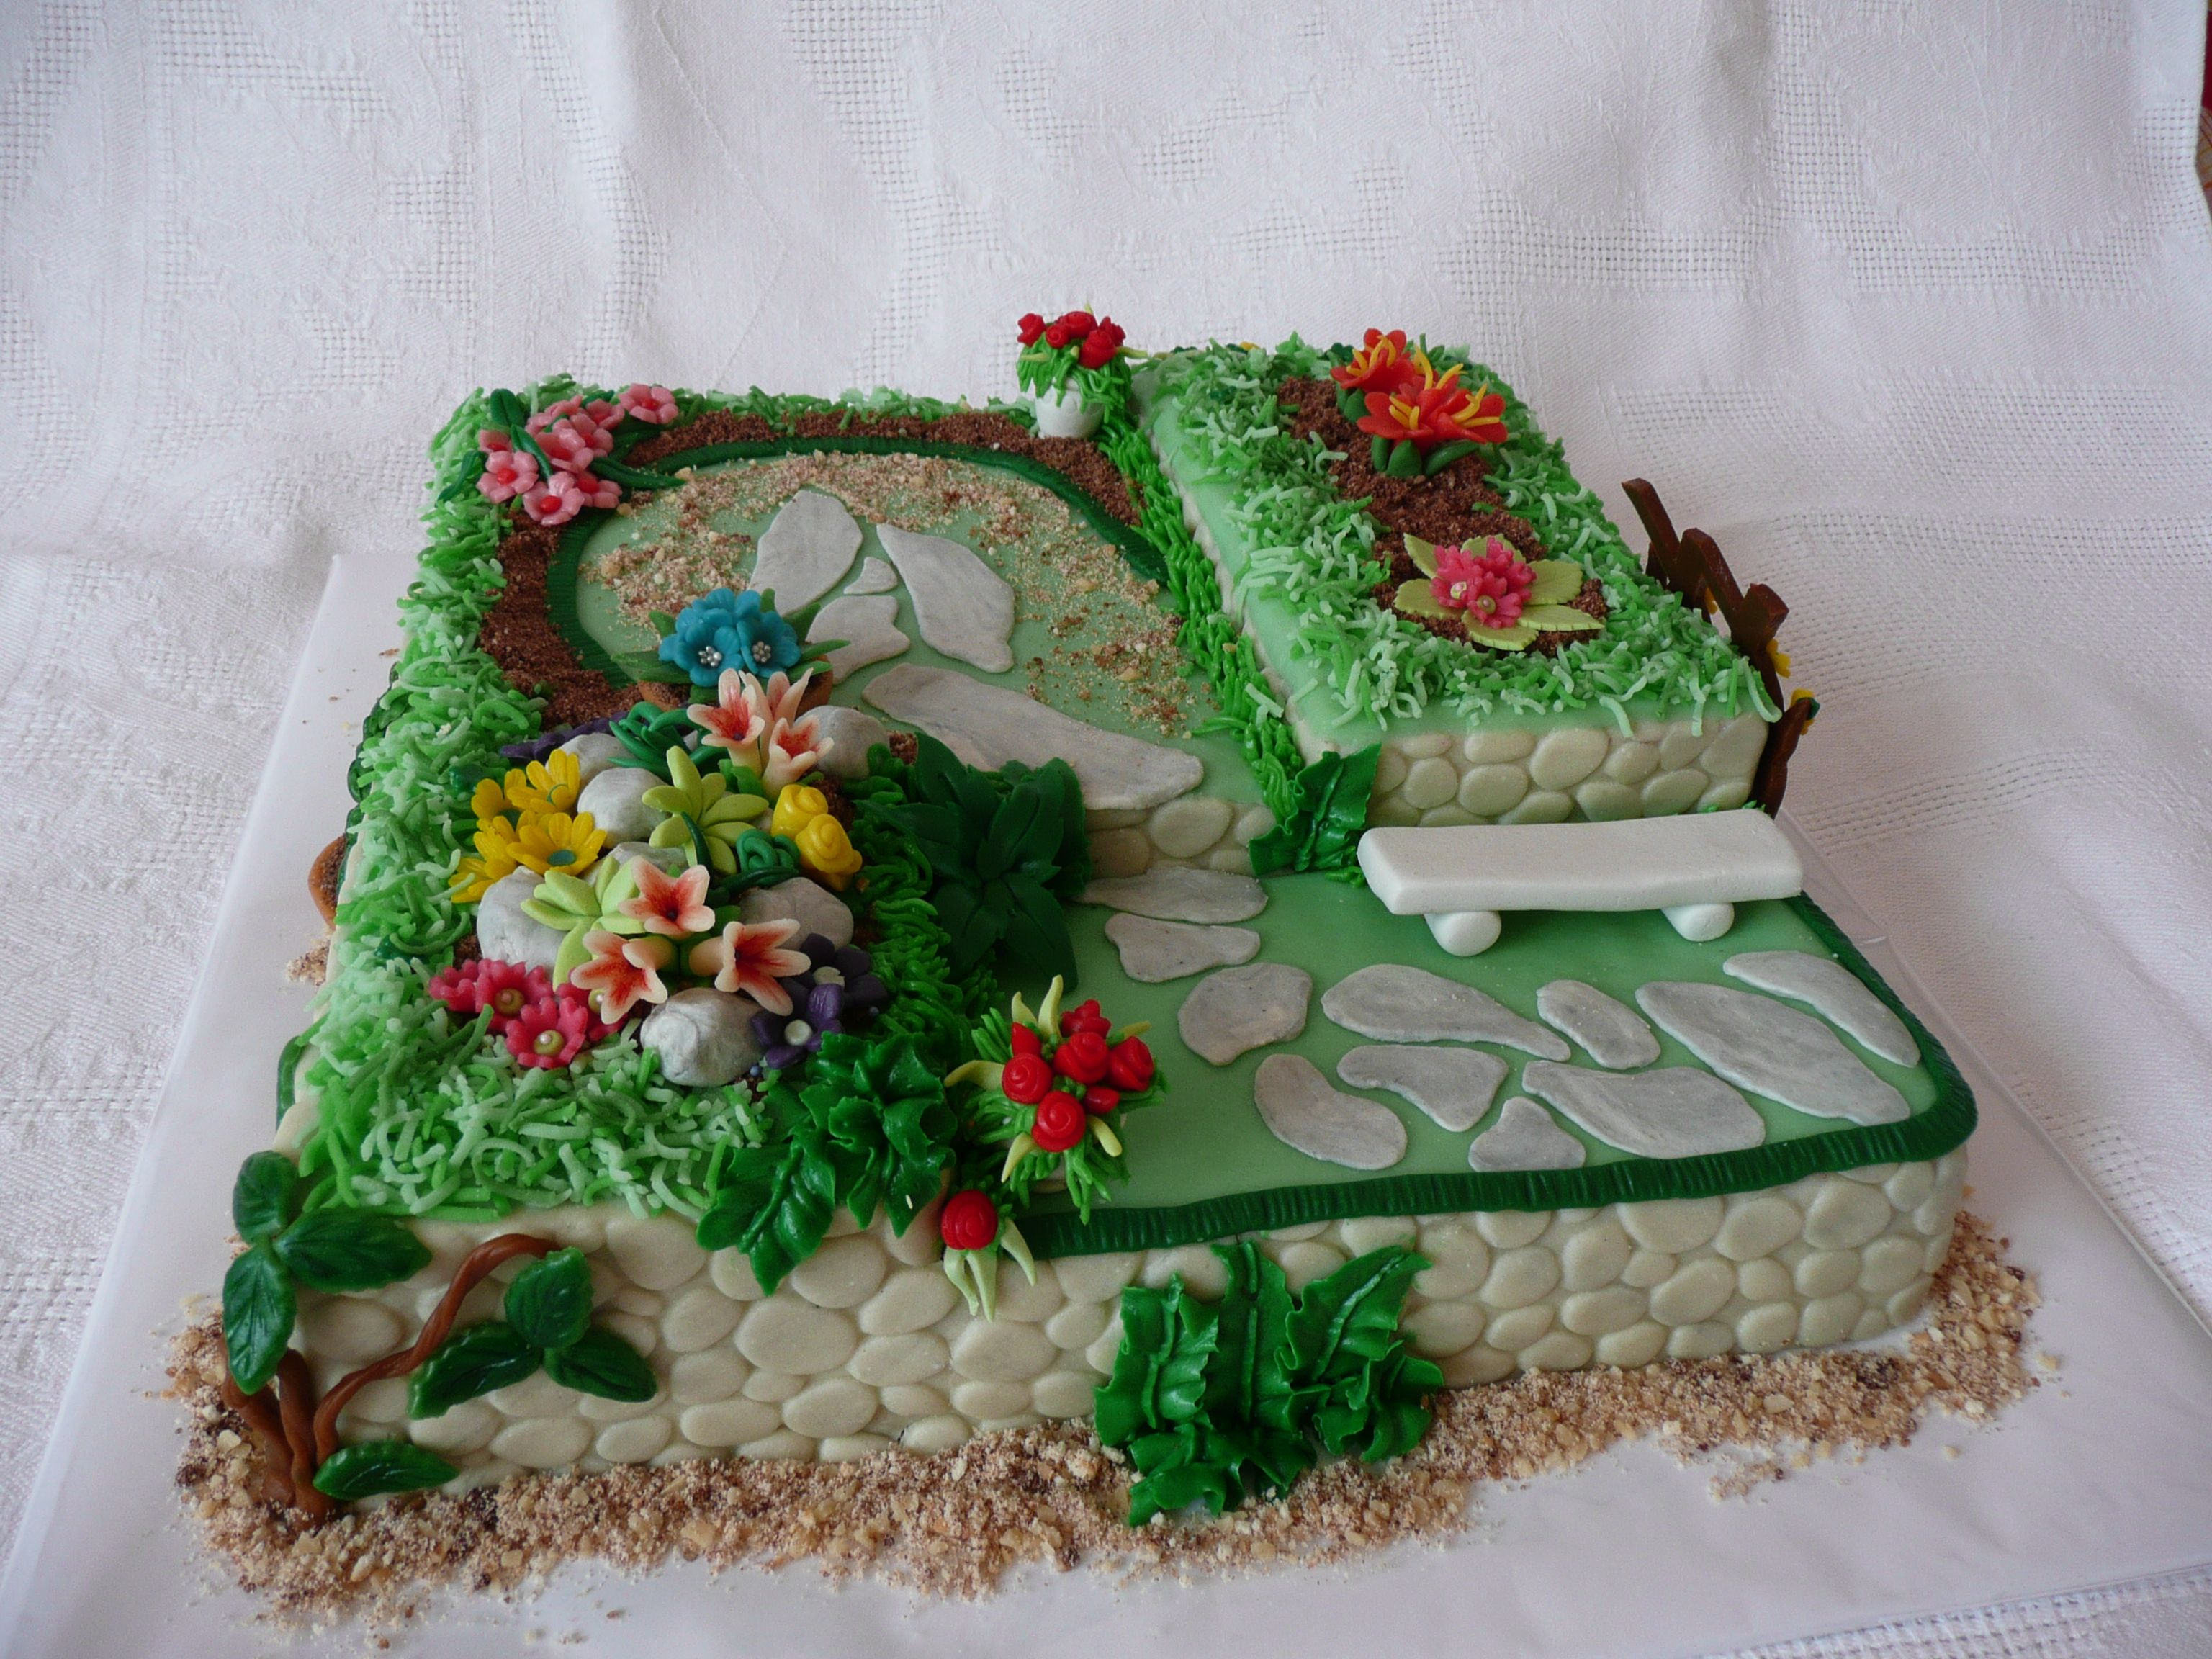 cake - Garden Design Birthday Cake